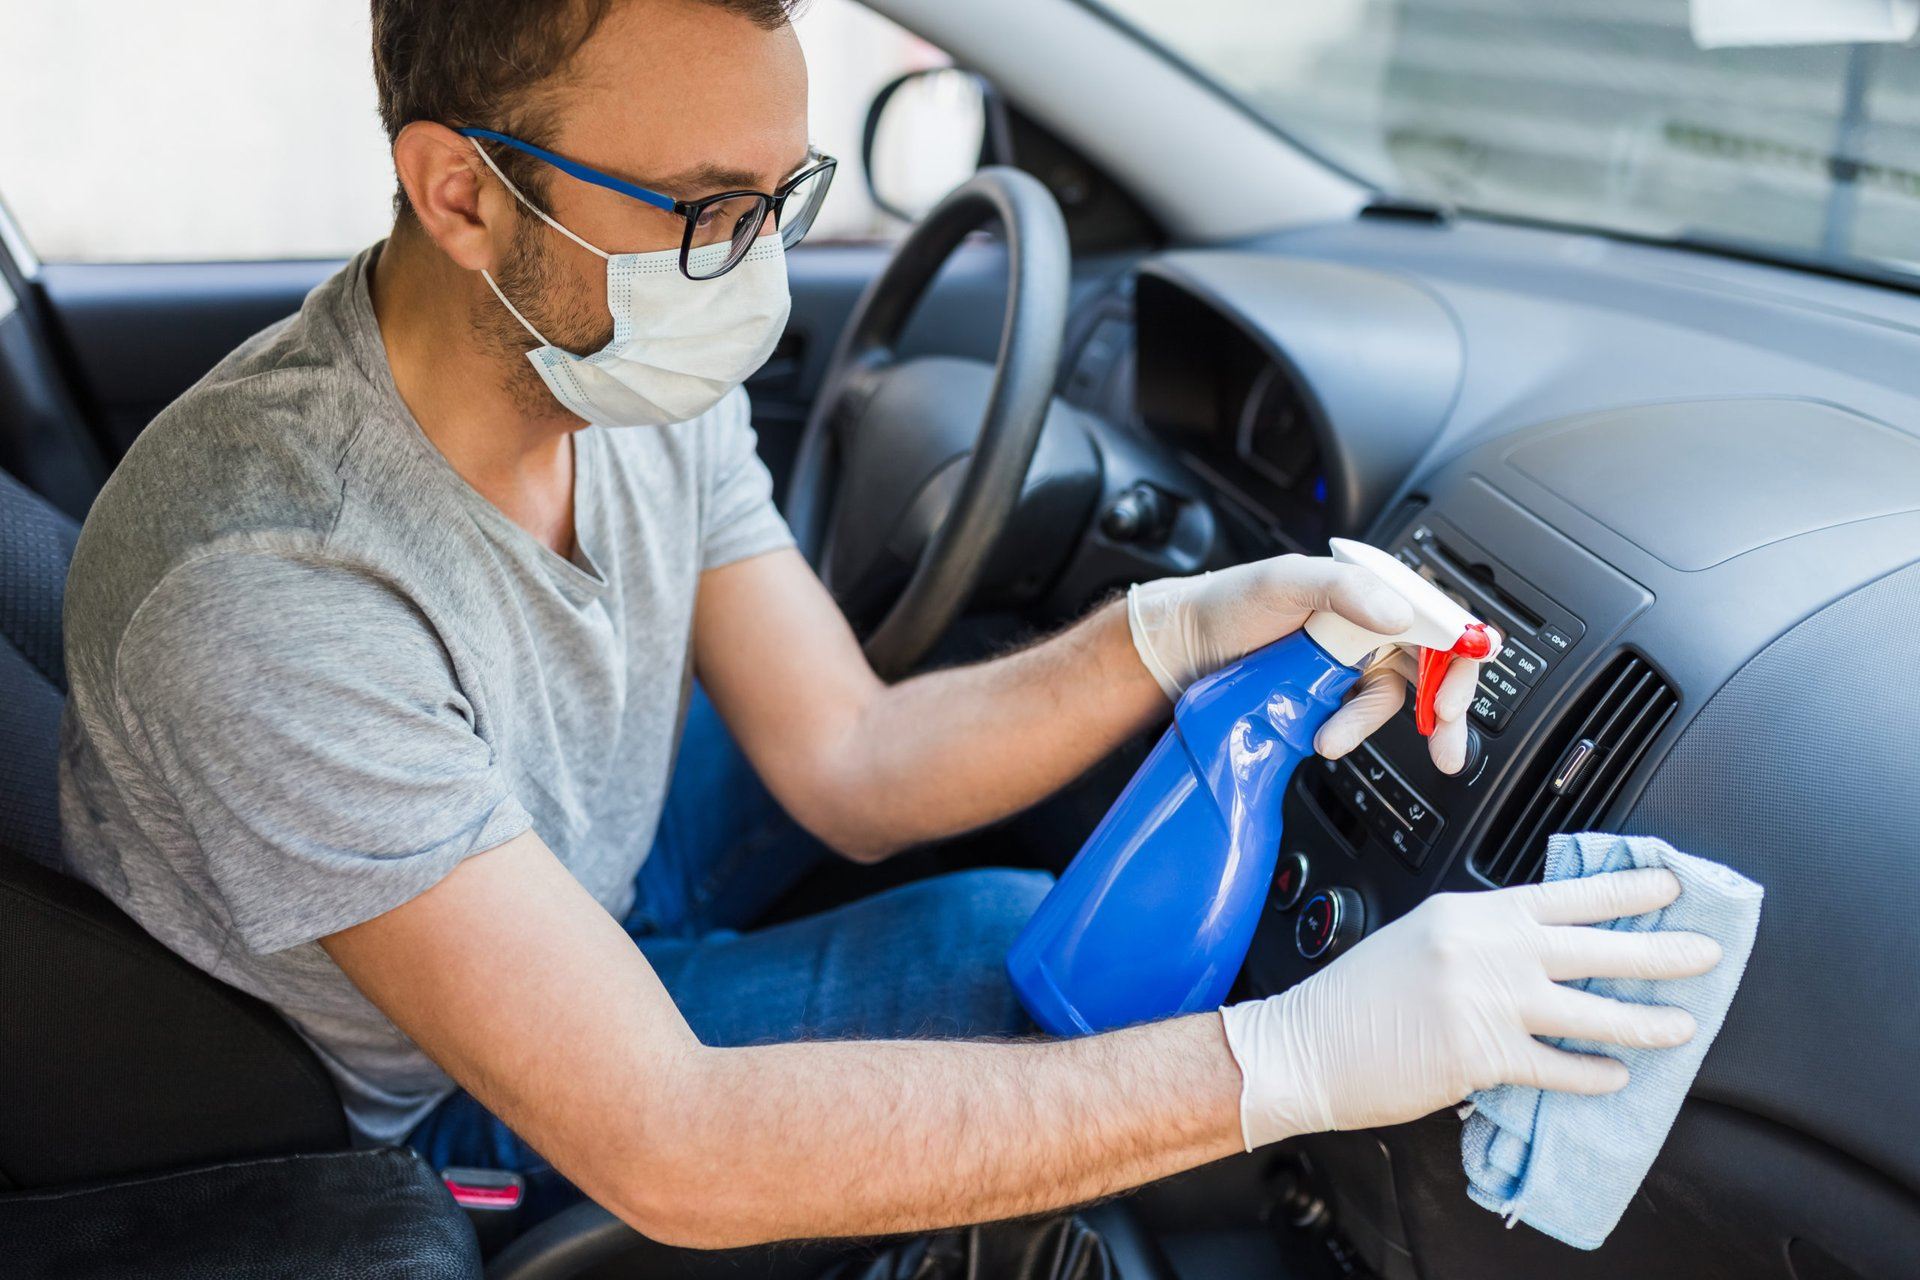 man in a mask cleaning coronavirus germs in his car